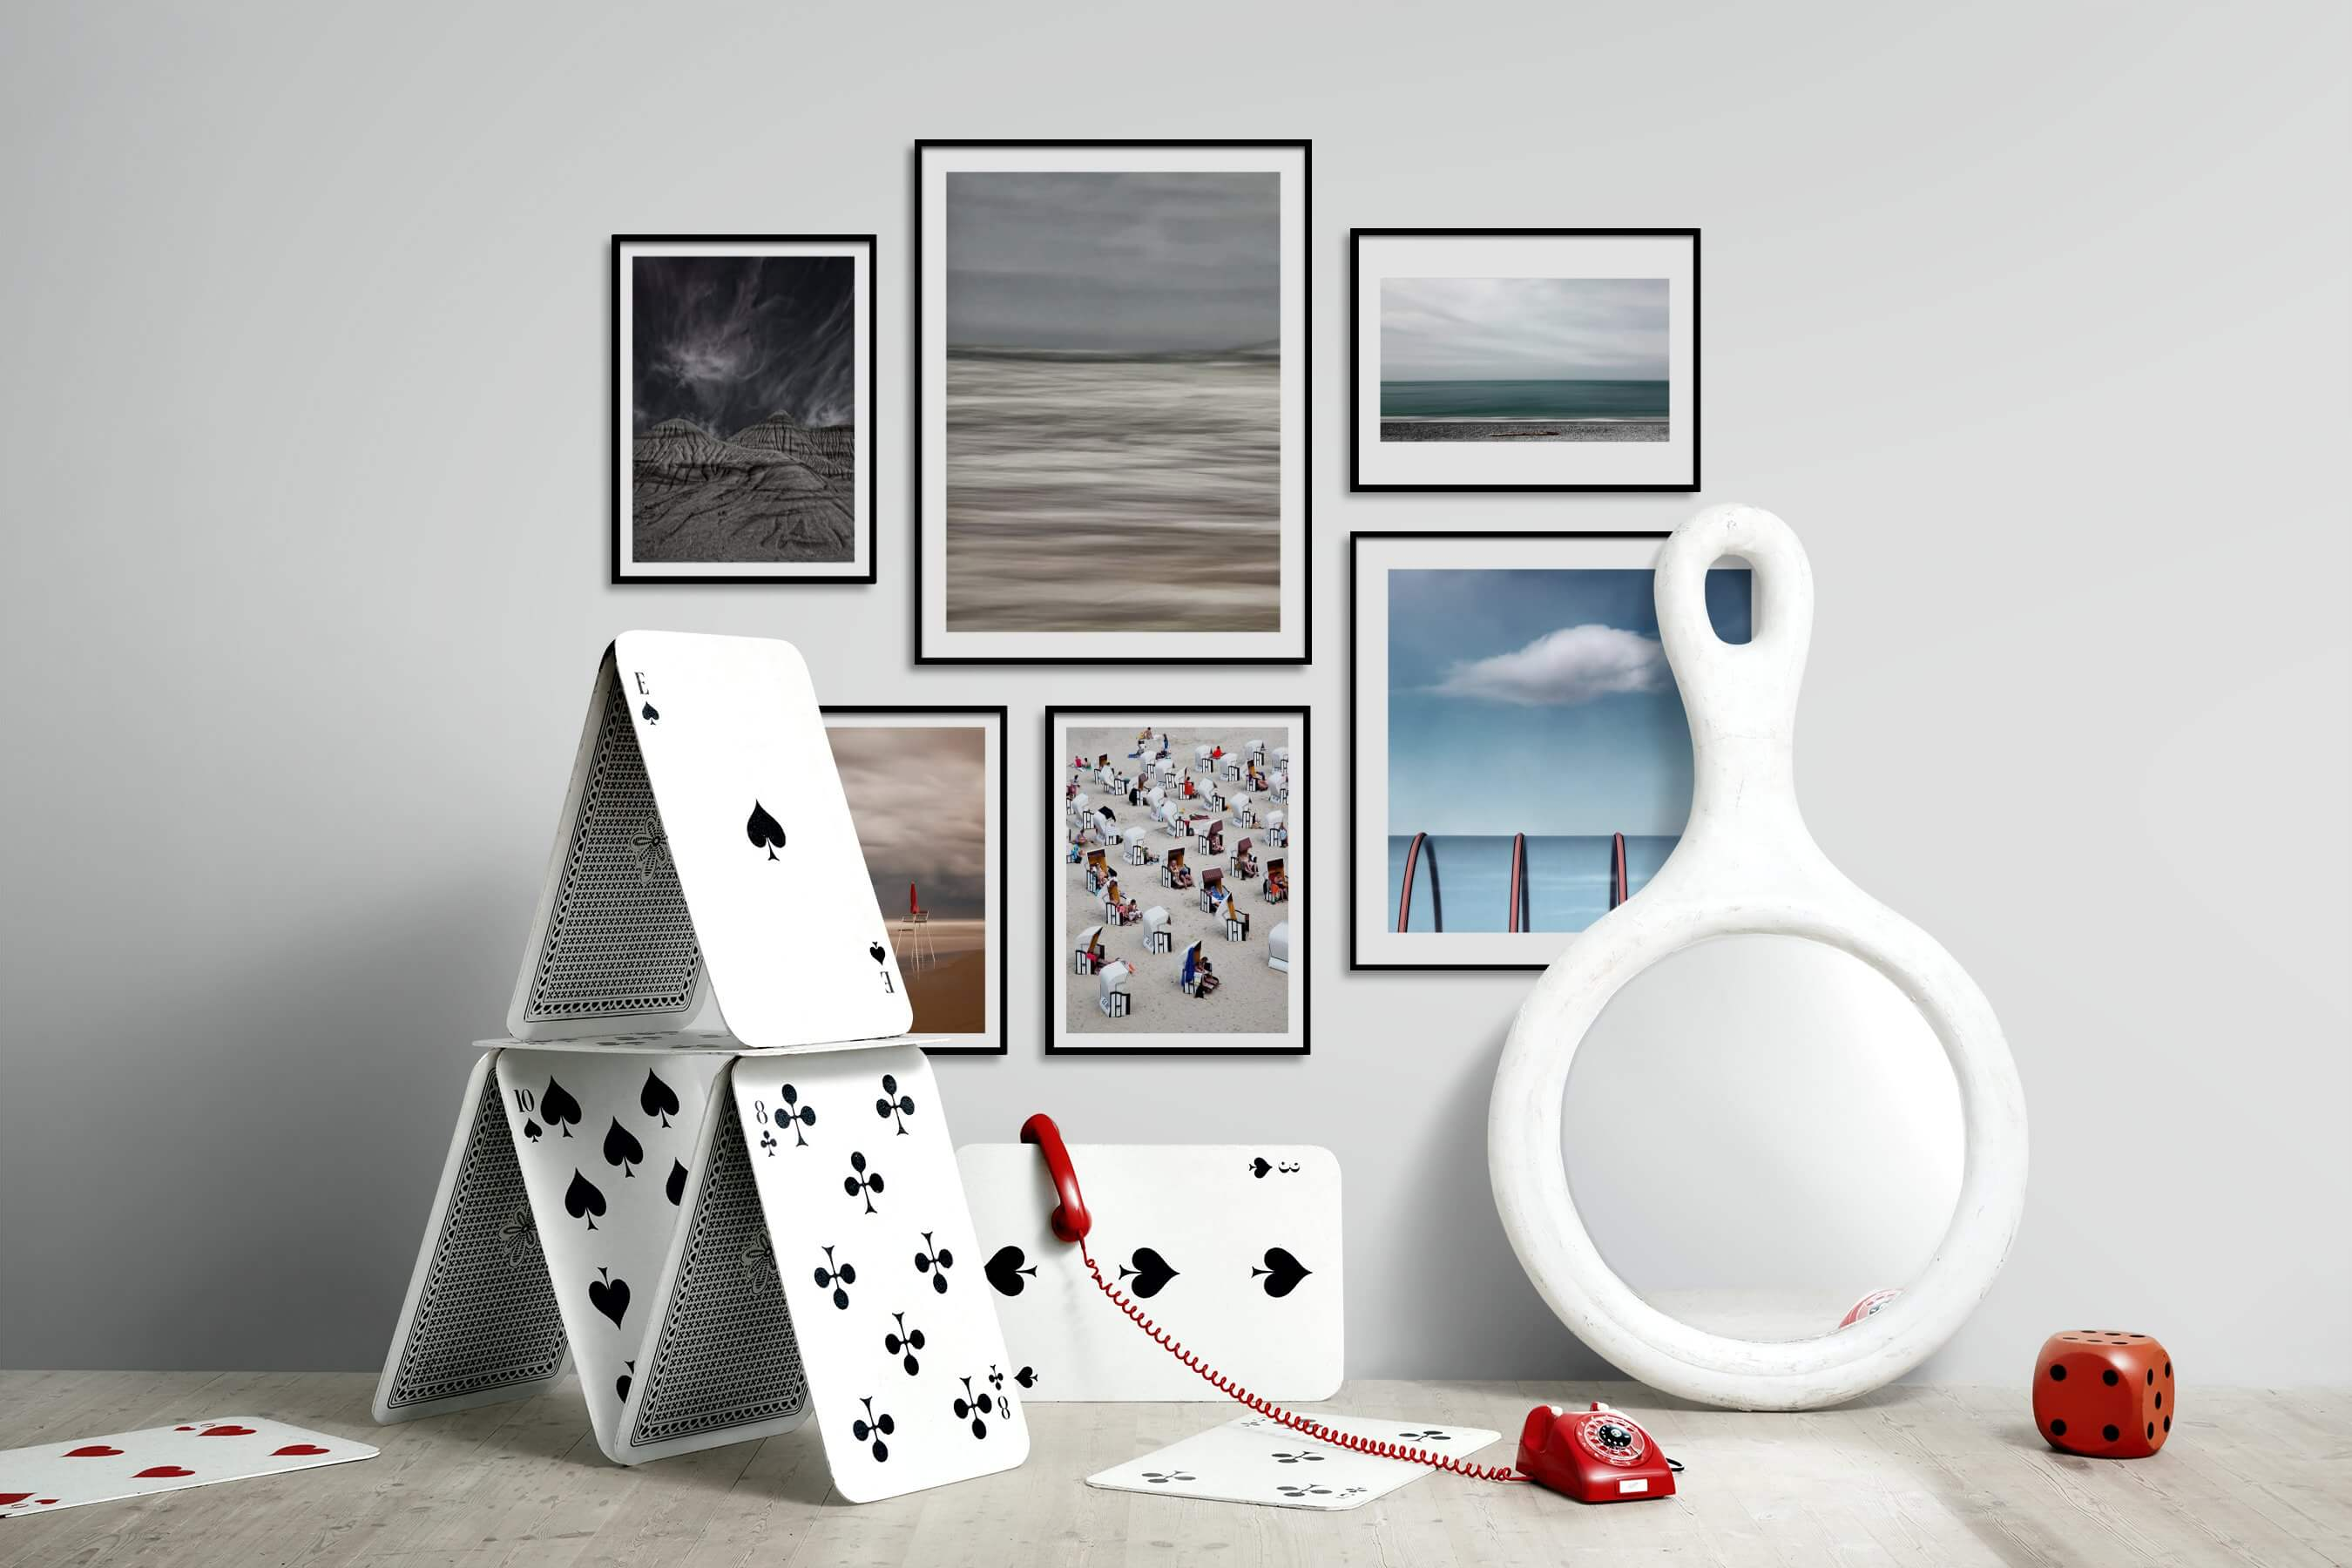 Gallery wall idea with six framed pictures arranged on a wall depicting Nature, For the Moderate, Beach & Water, For the Minimalist, and Mindfulness